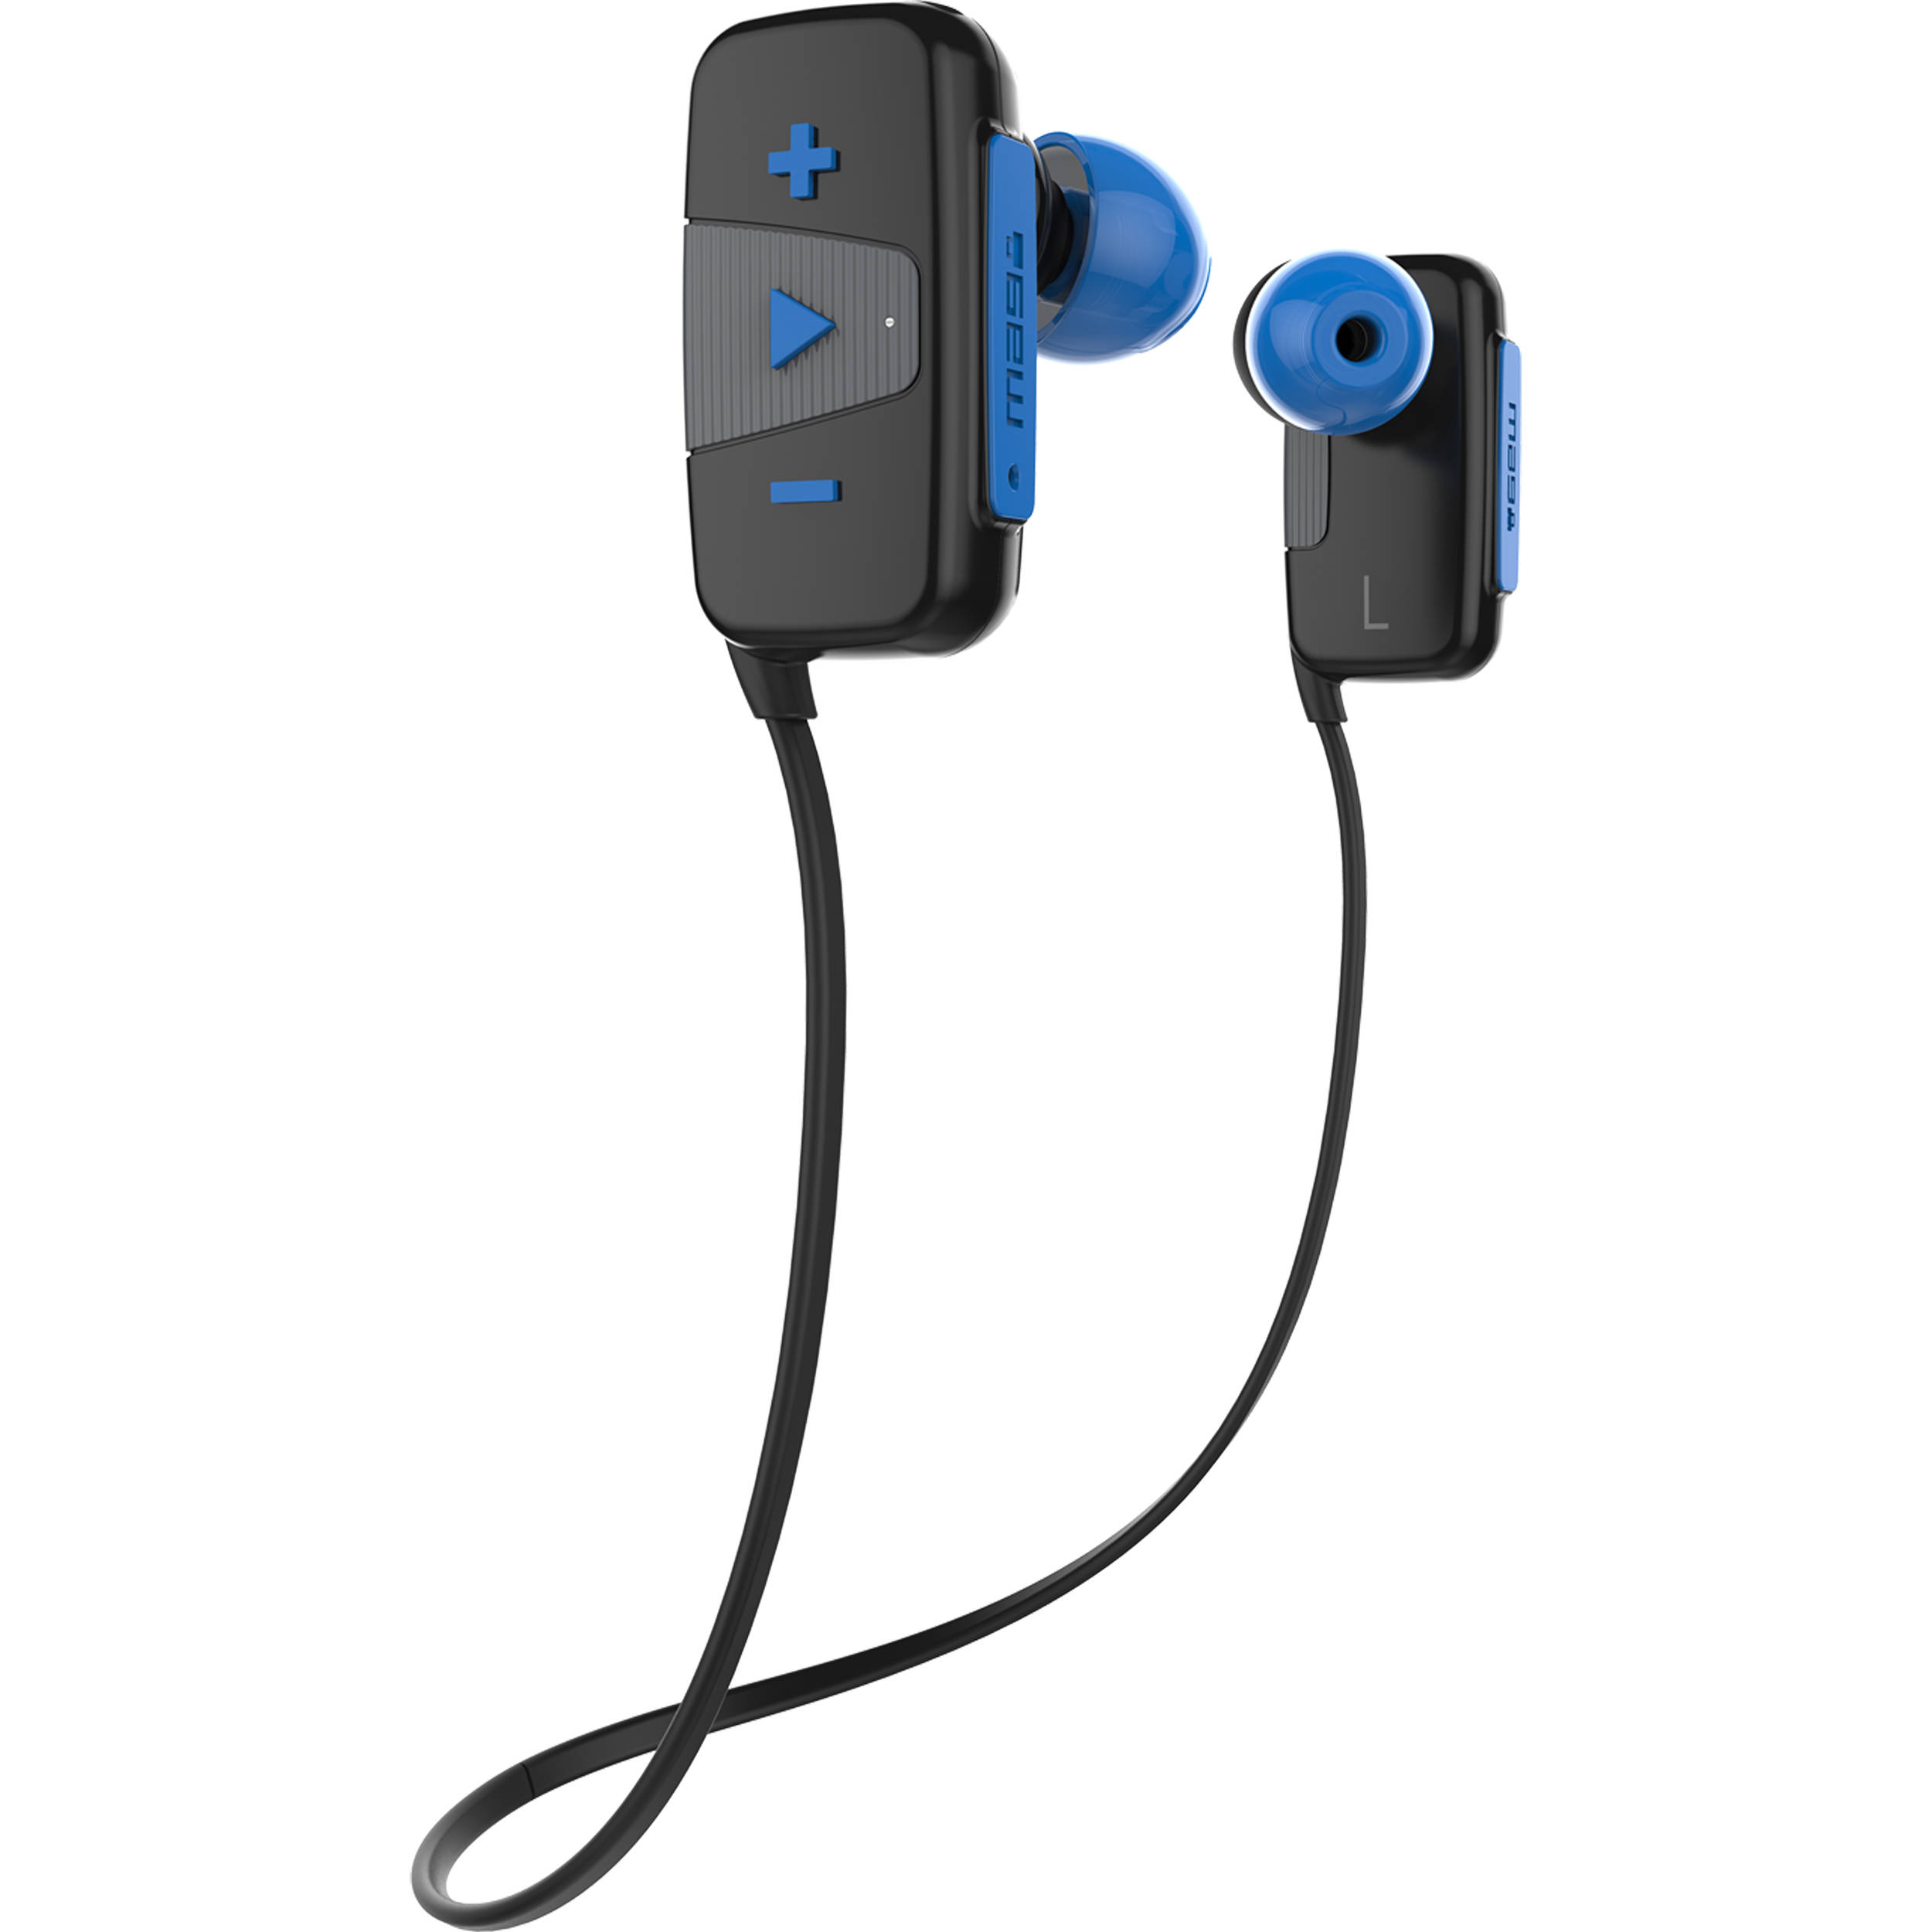 jam transit mini wireless earbuds blue hx ep315bl b h photo. Black Bedroom Furniture Sets. Home Design Ideas